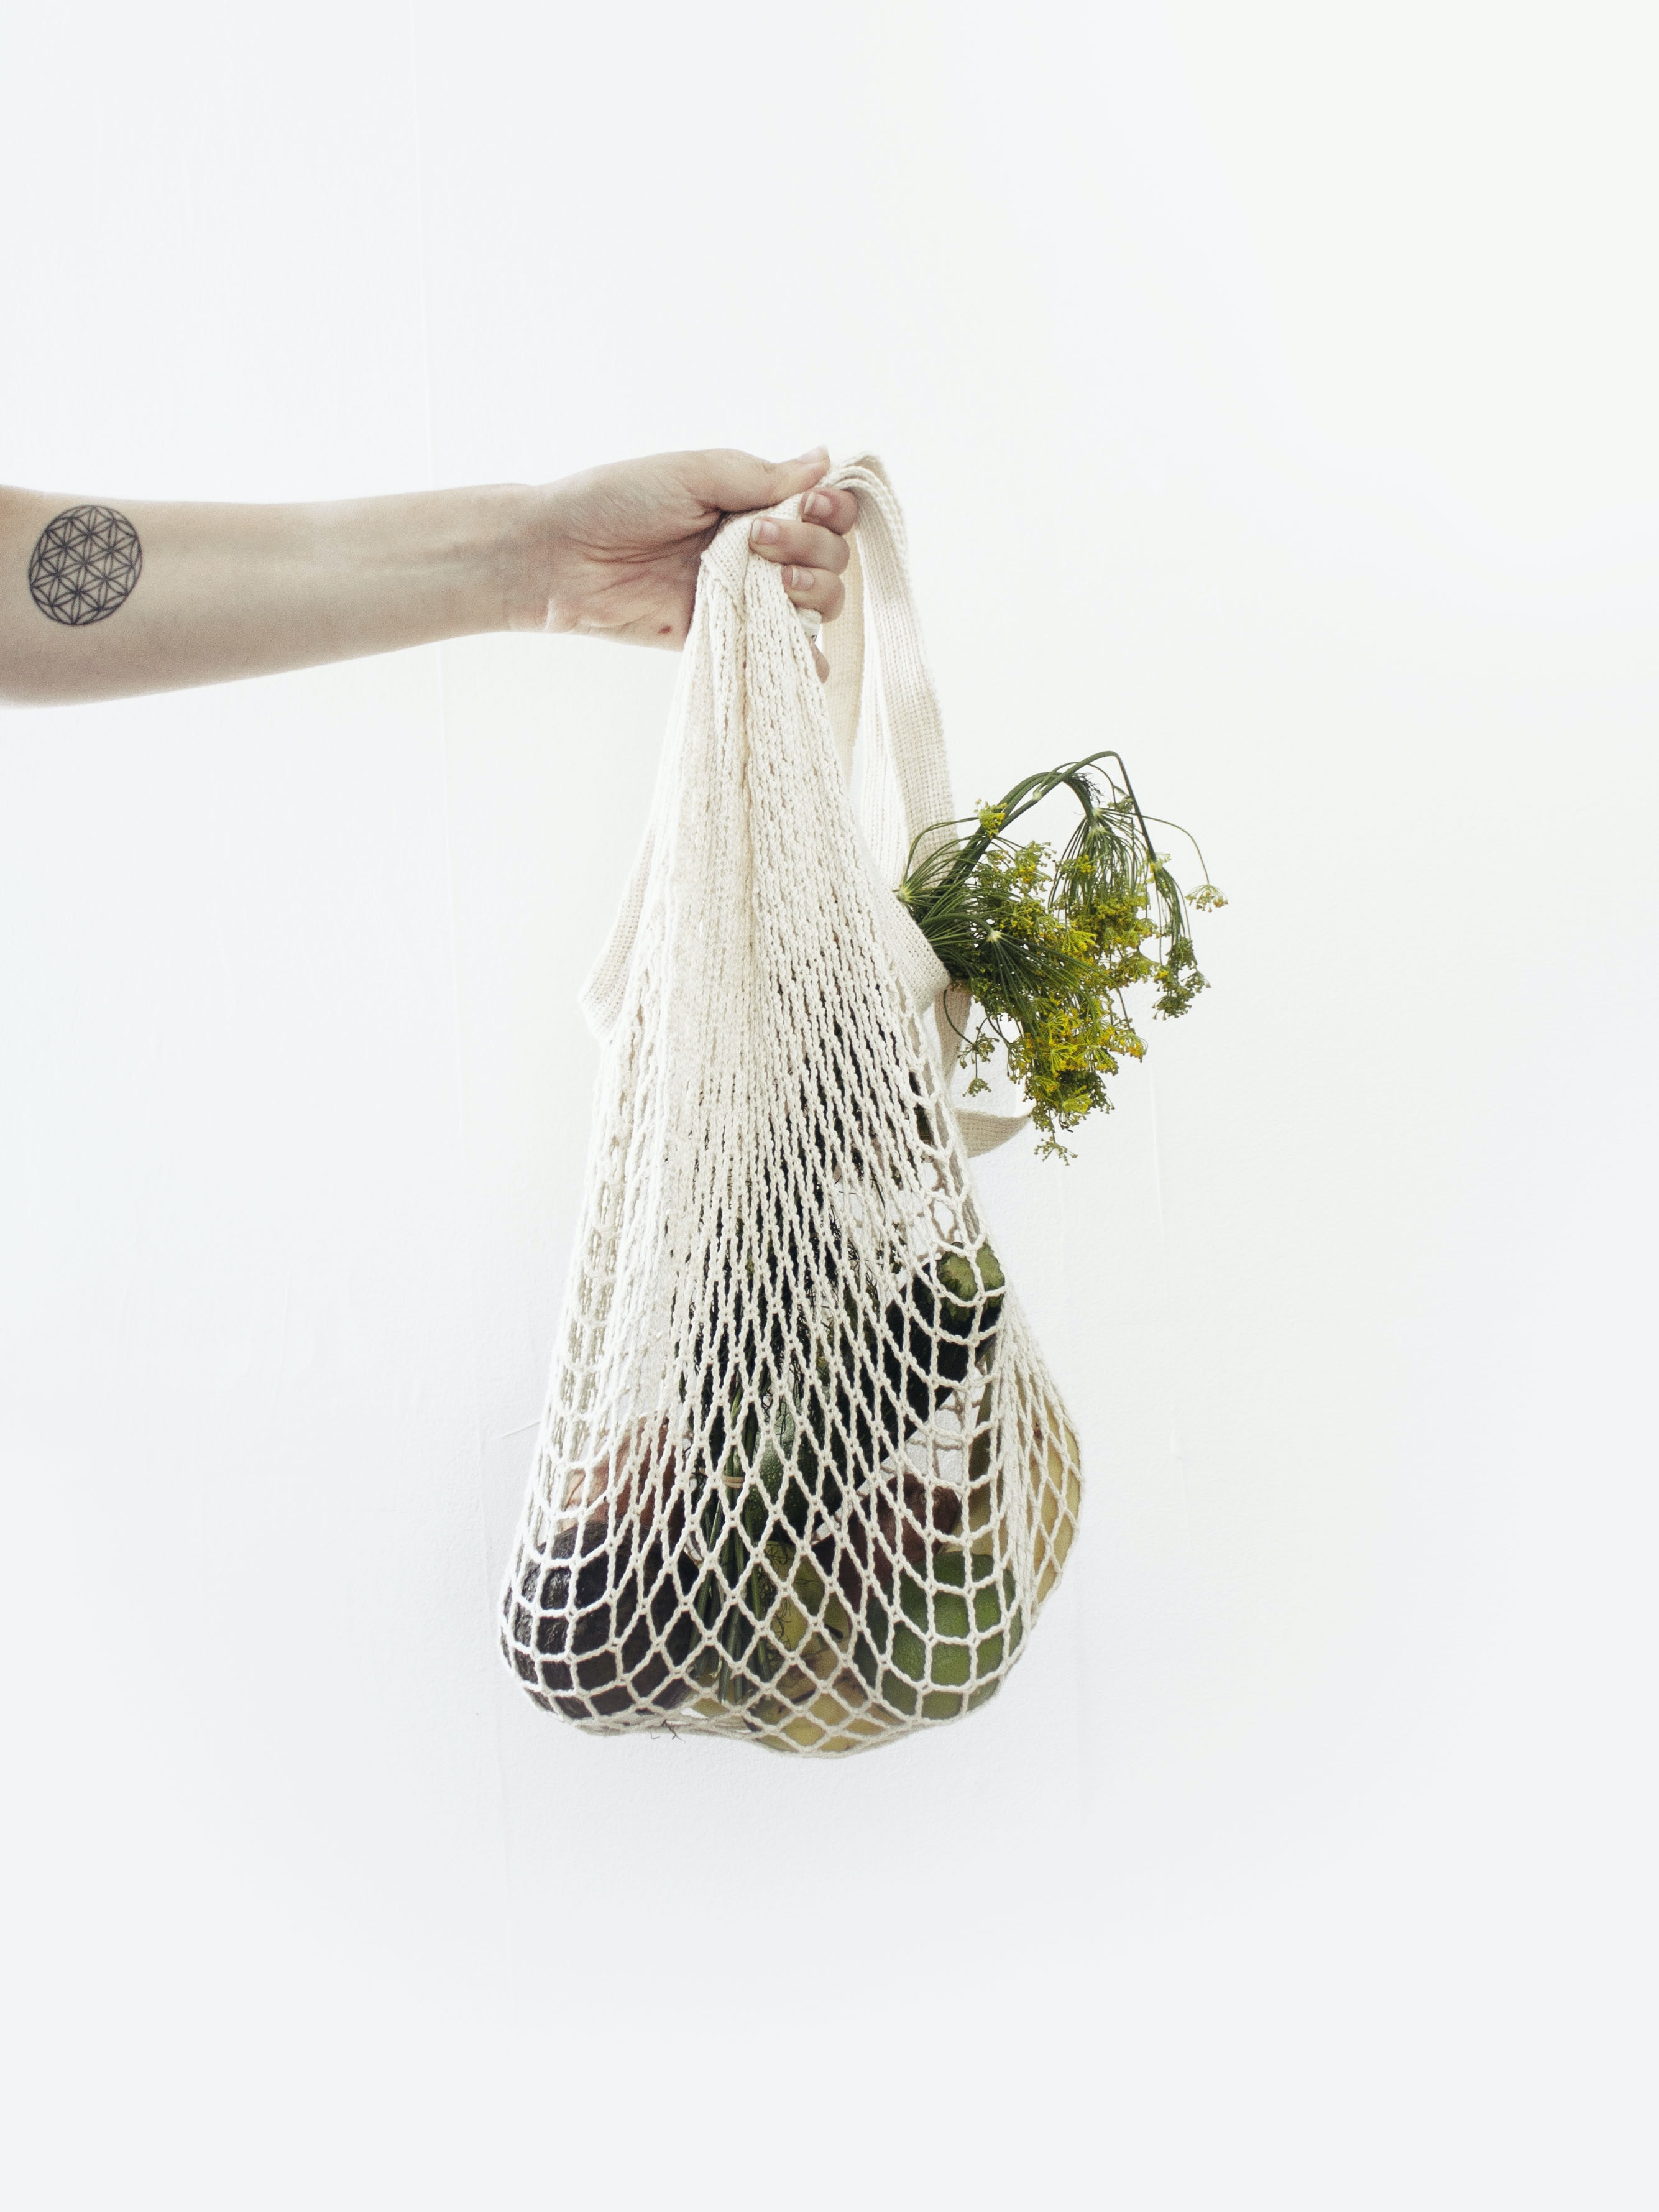 person holding white net with vegetable